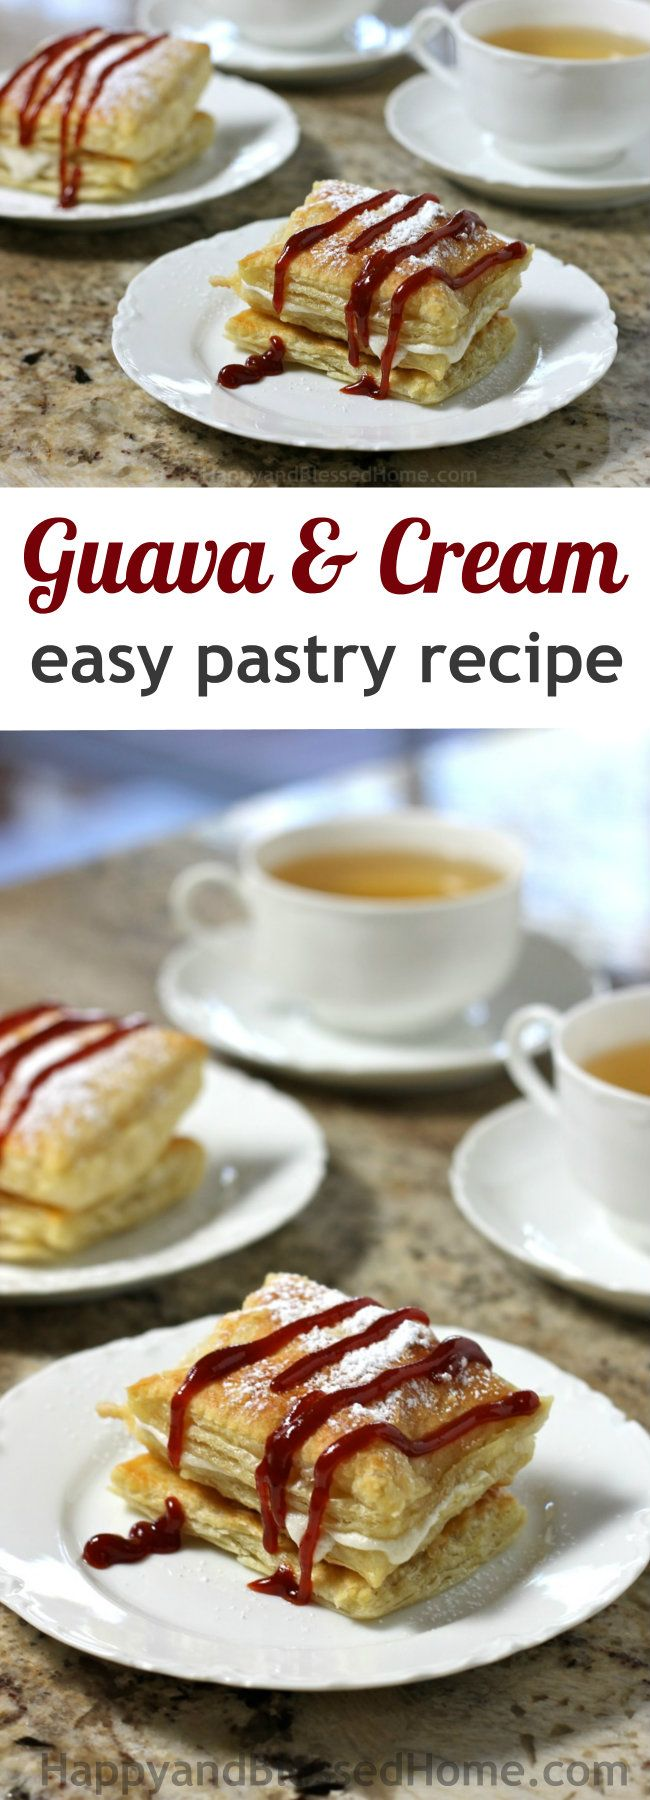 Cuban style guava and cream filled pastries cuban culture easy easy recipe for guava and cream pastry dessert inspired by cuban culture from happyandblessedhome forumfinder Gallery